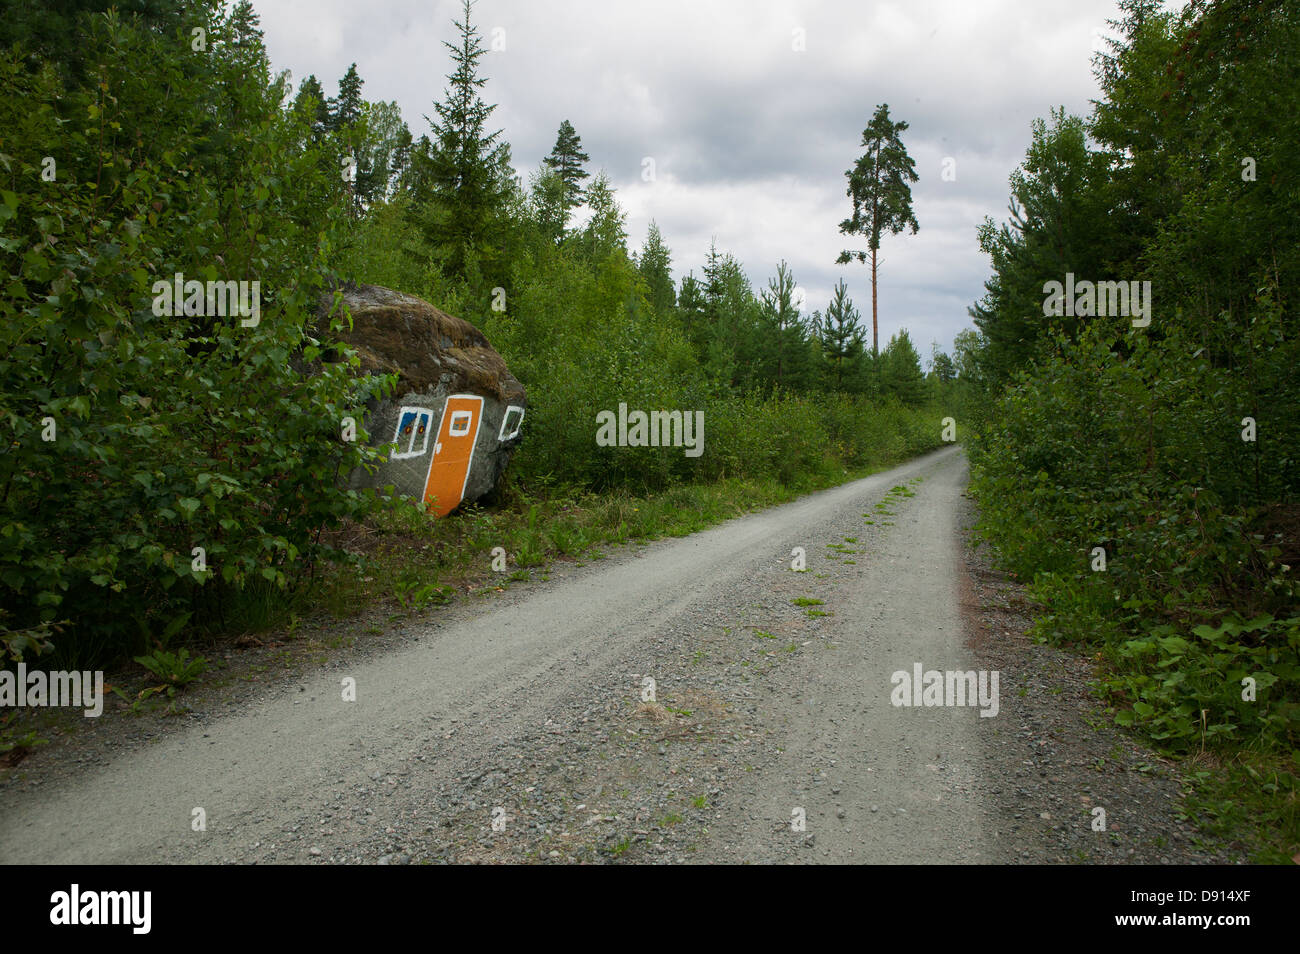 House painted on rock along graveled road - Stock Image